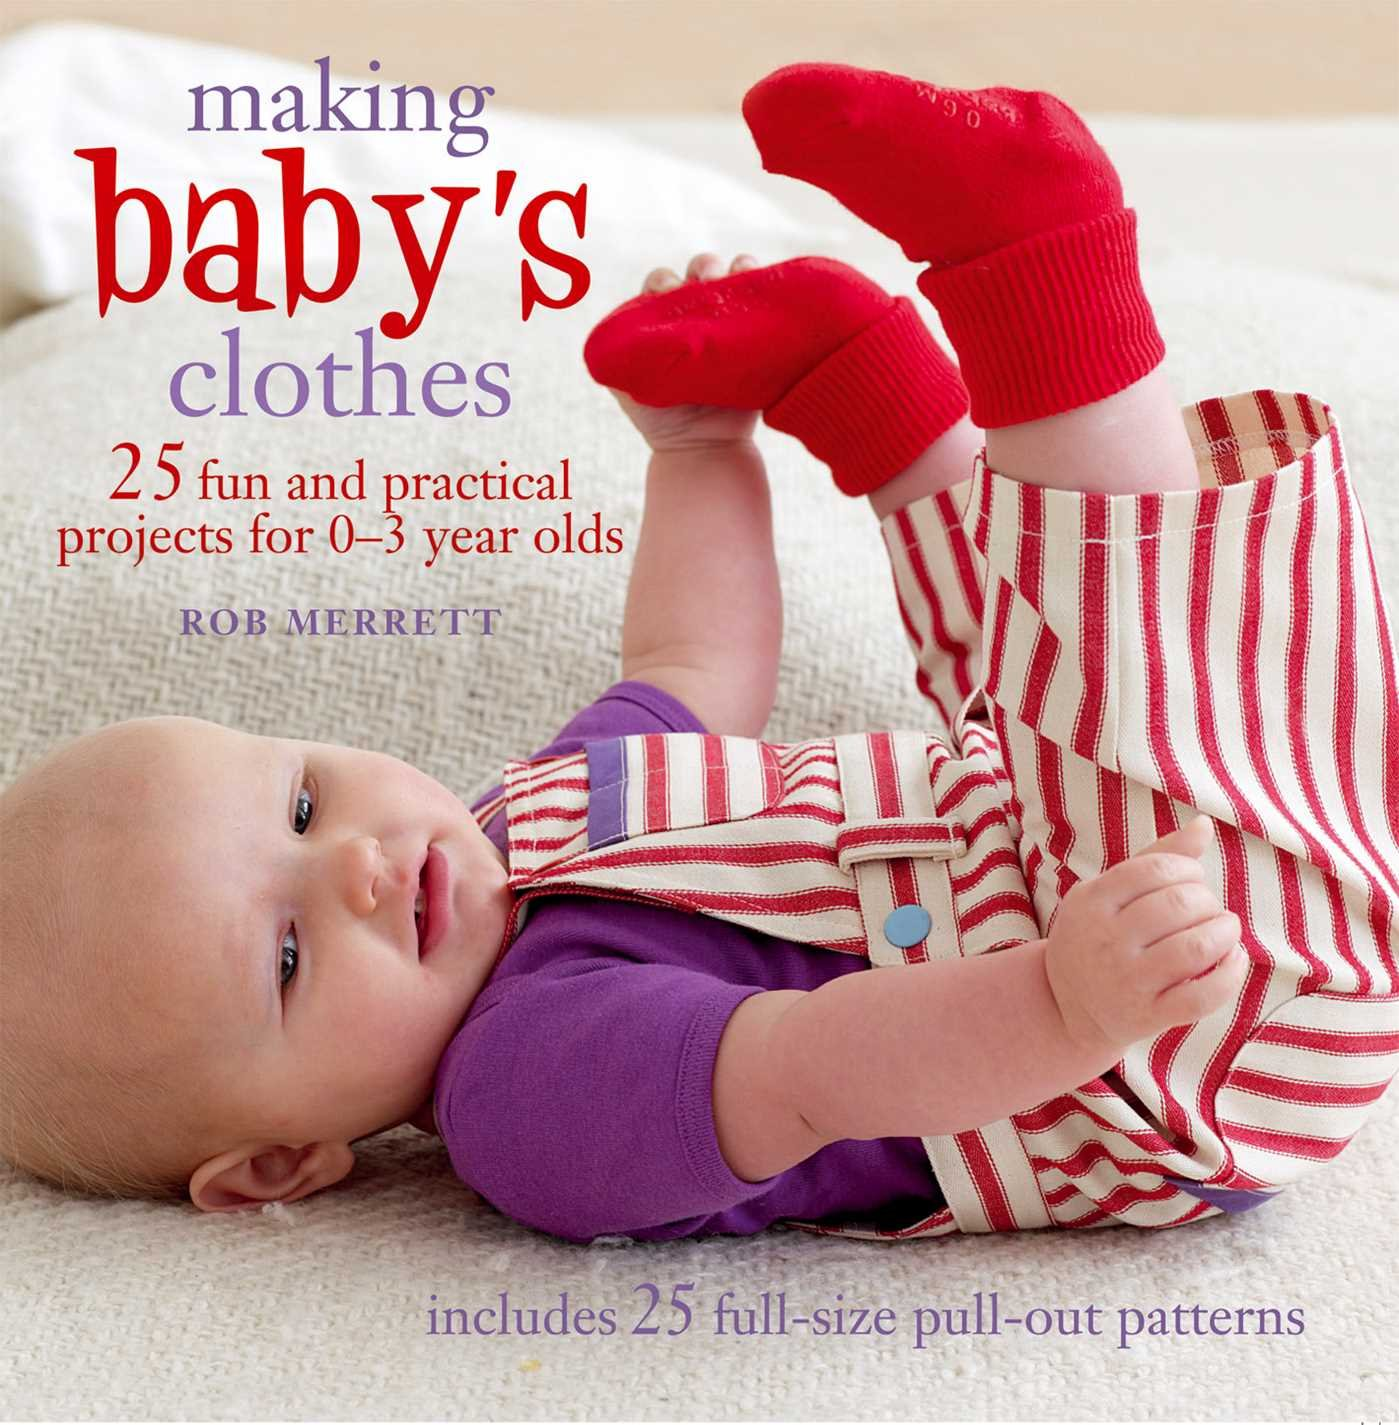 Making Baby's Clothes: 25 Fun and Practical Projects for 0 - 3 Year Olds pdf epub